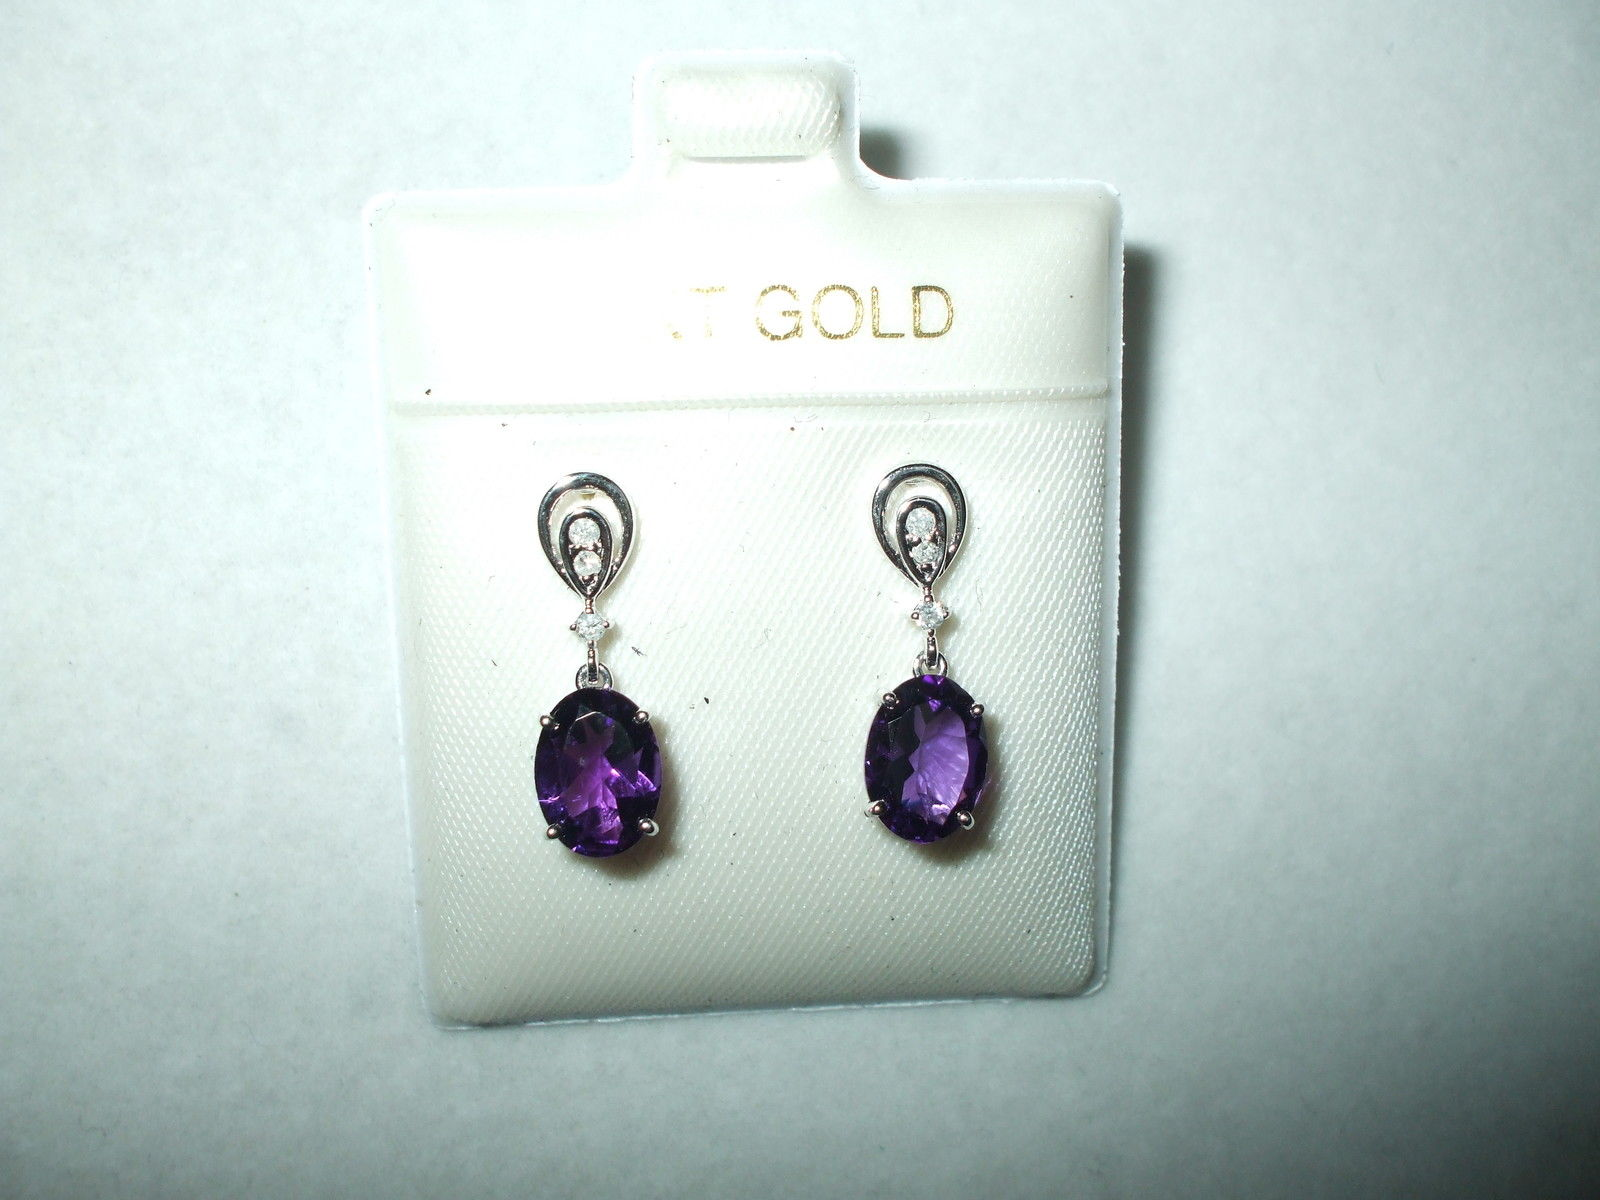 Genuine Amethyst & Diamond 14K white gold Earrings  NWT $760